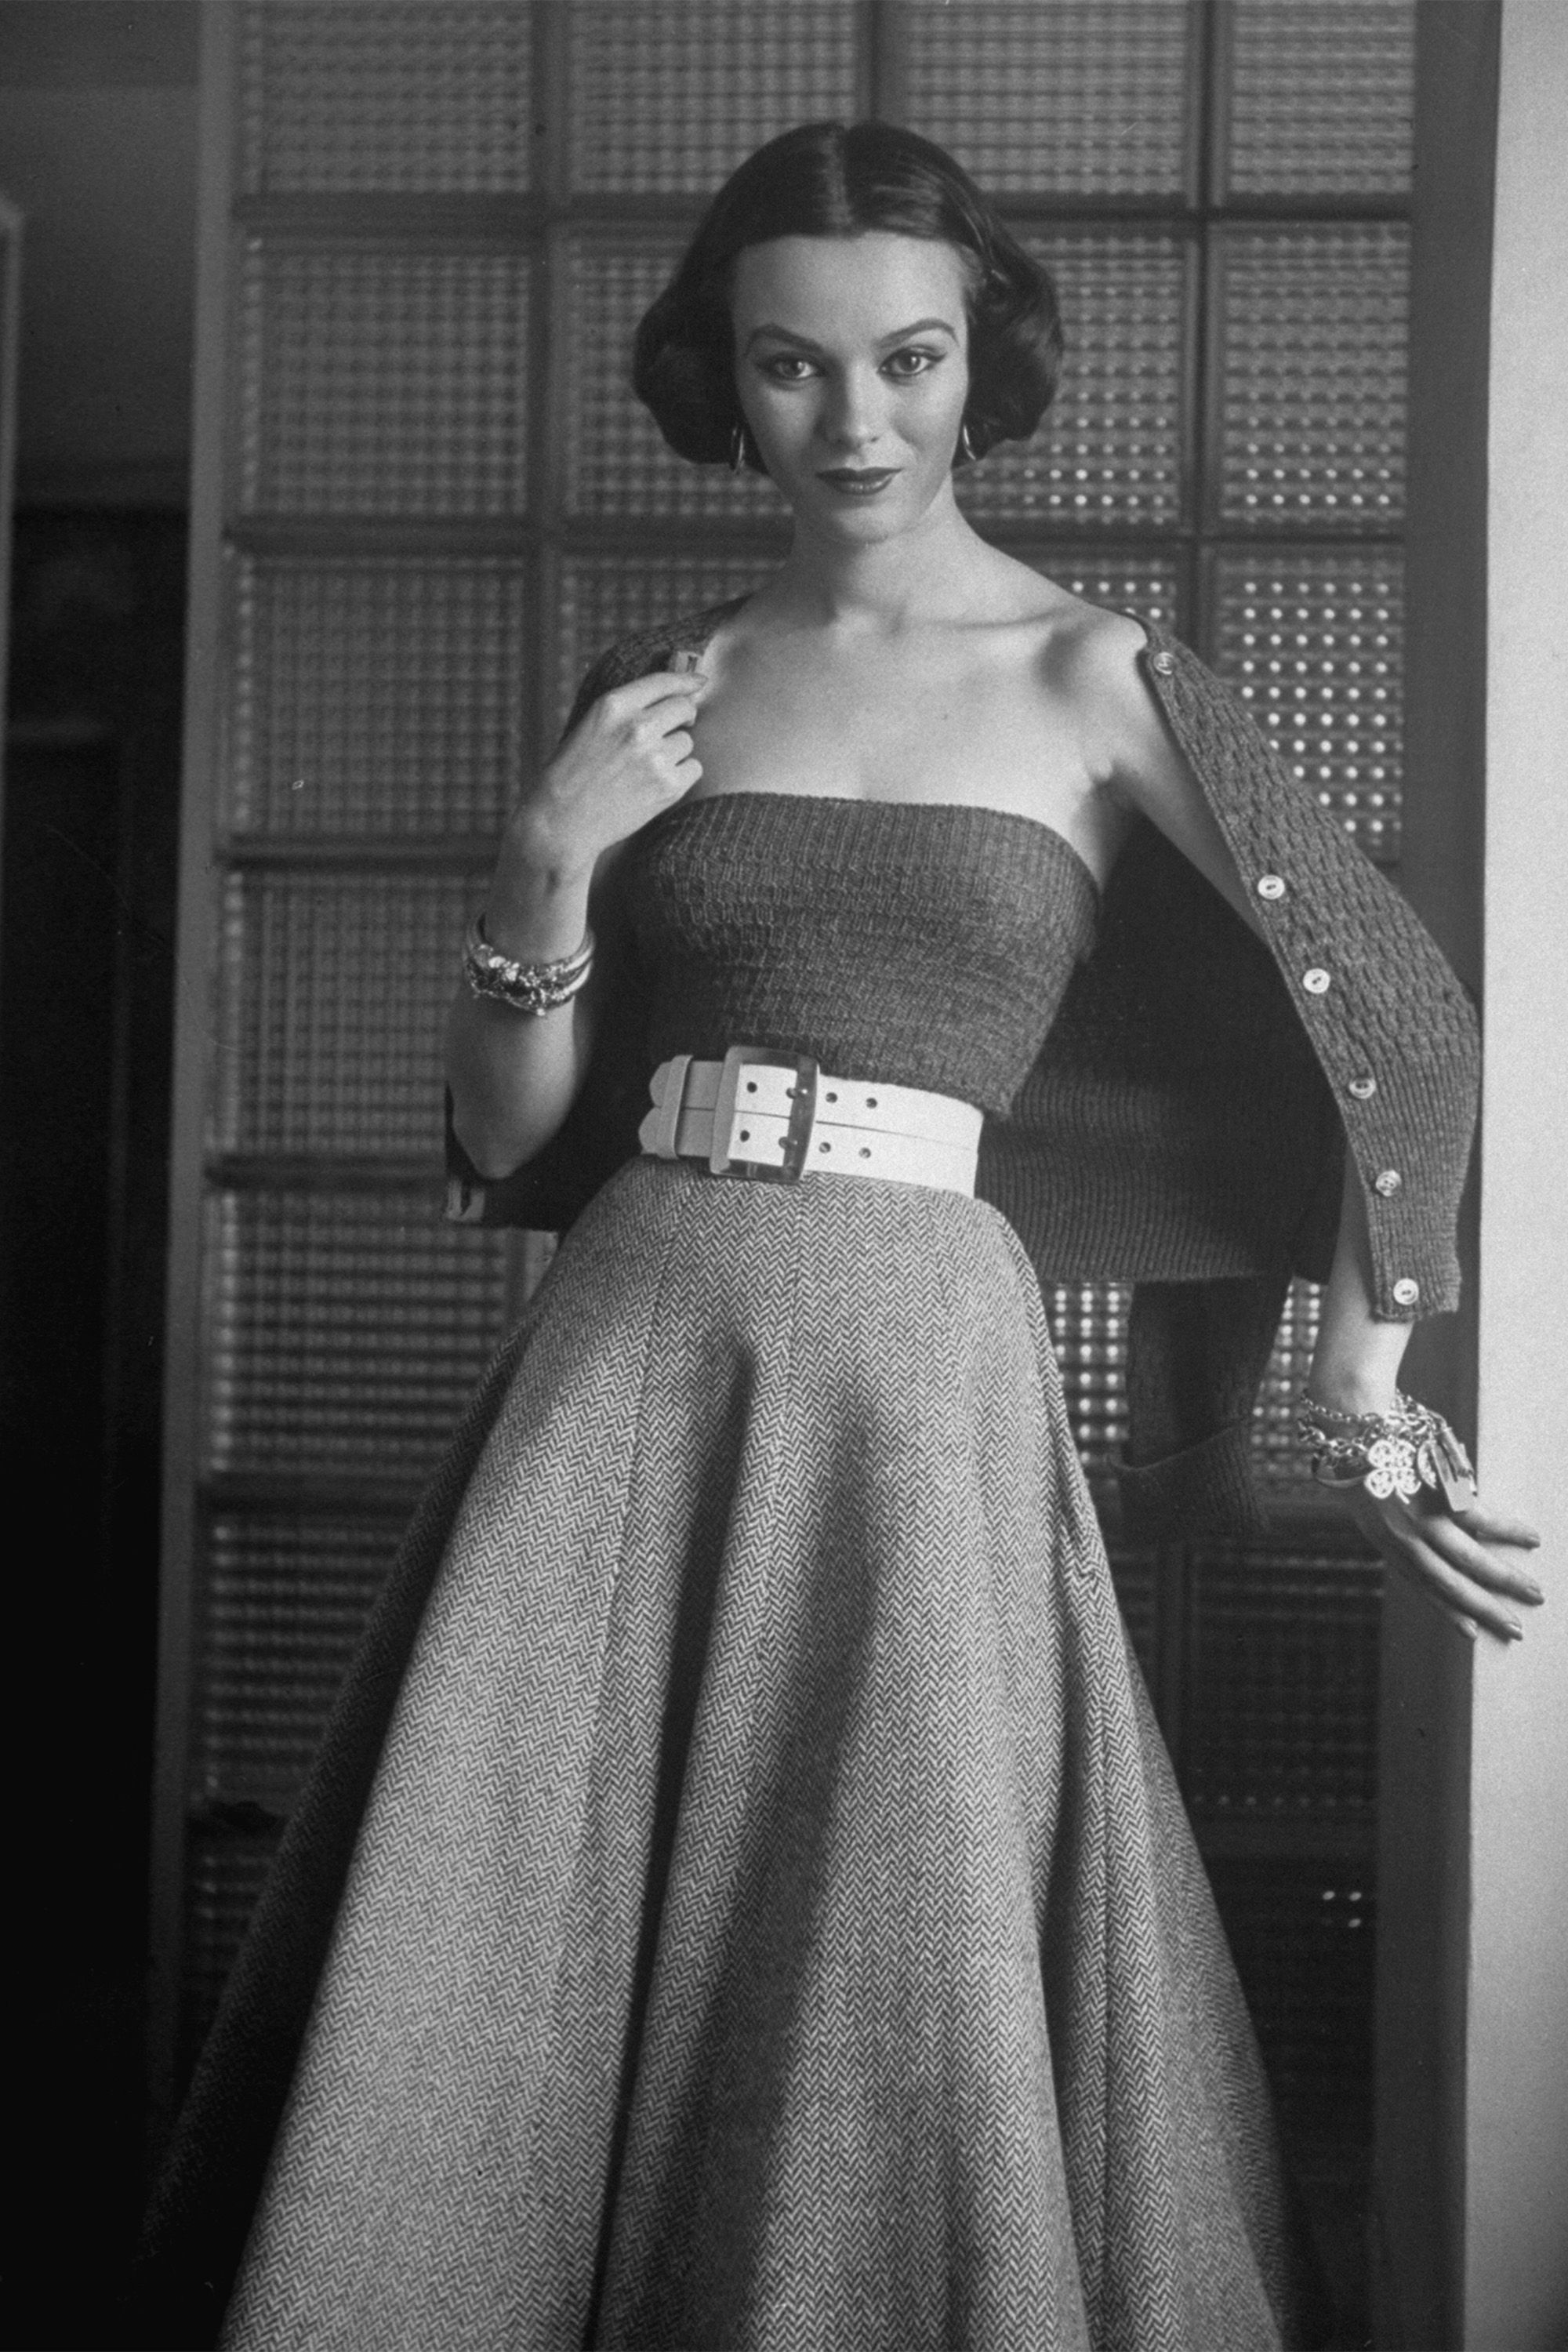 0d981d7ff5cc 1950s Fashion Photos and Trends - Fashion Trends From The 50s